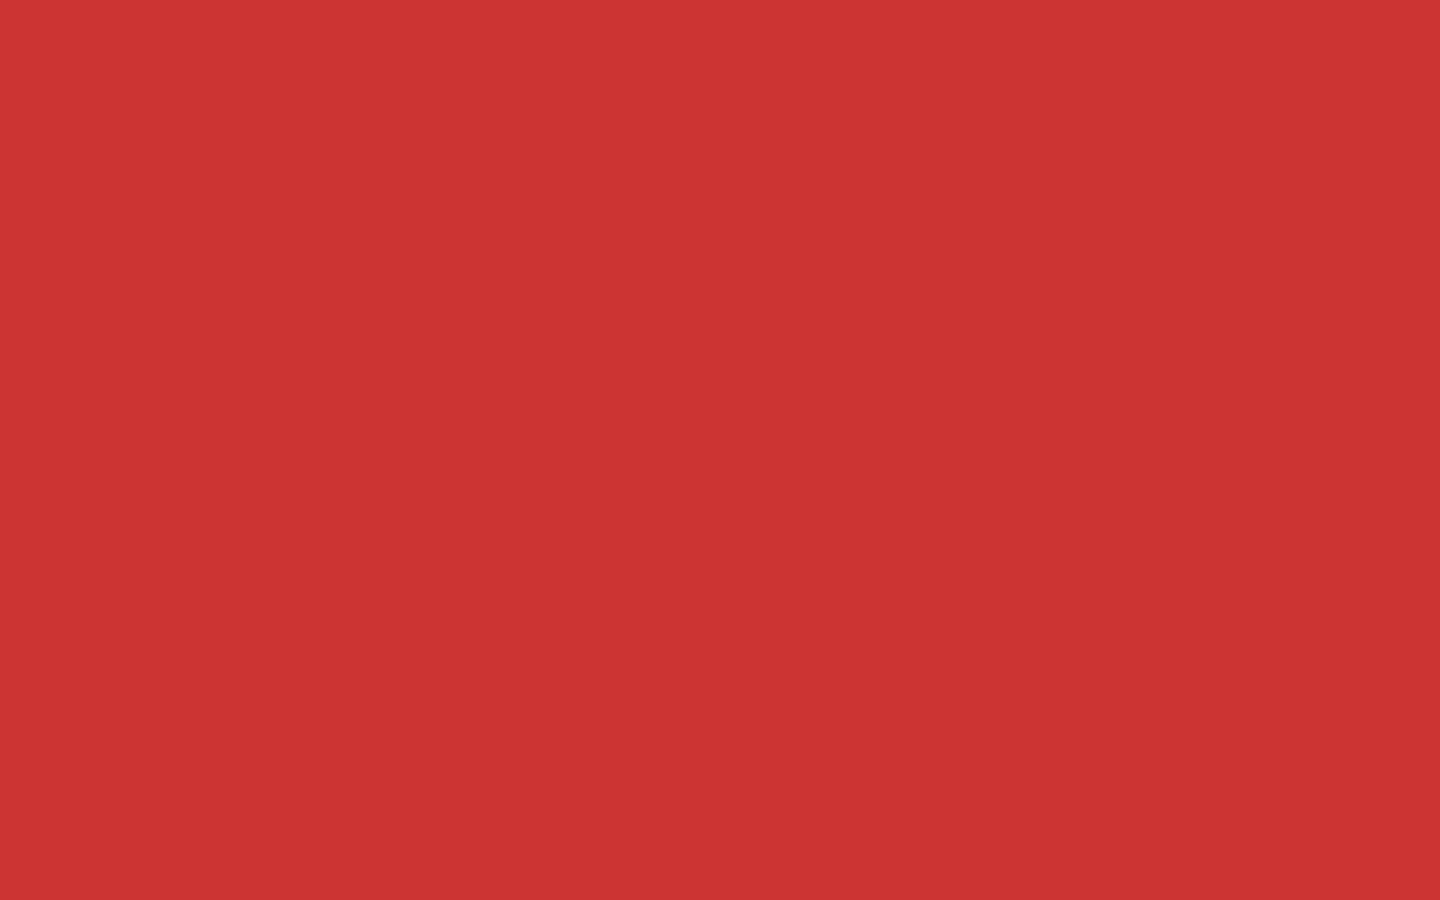 1440x900 Persian Red Solid Color Background